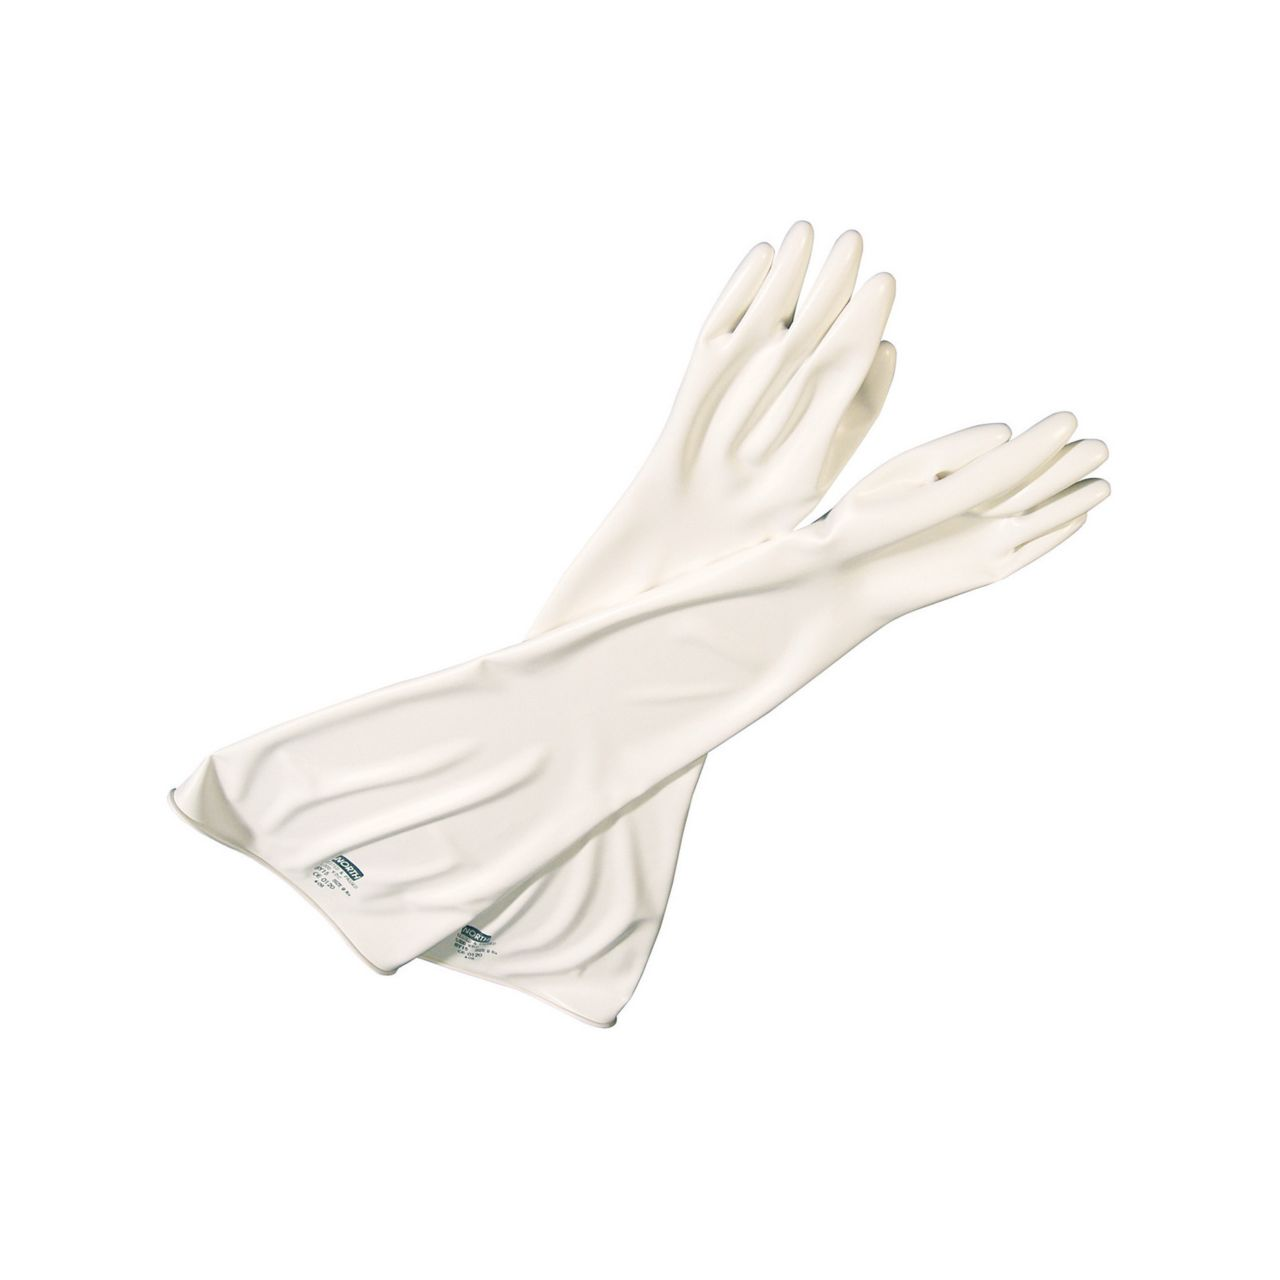 HS_csm_lead-loaded_glovebox__gloves_-_8yly3032_8yly3032 8yly3032a 7yly3032 7yly3032a 5yly3032 north csm_1